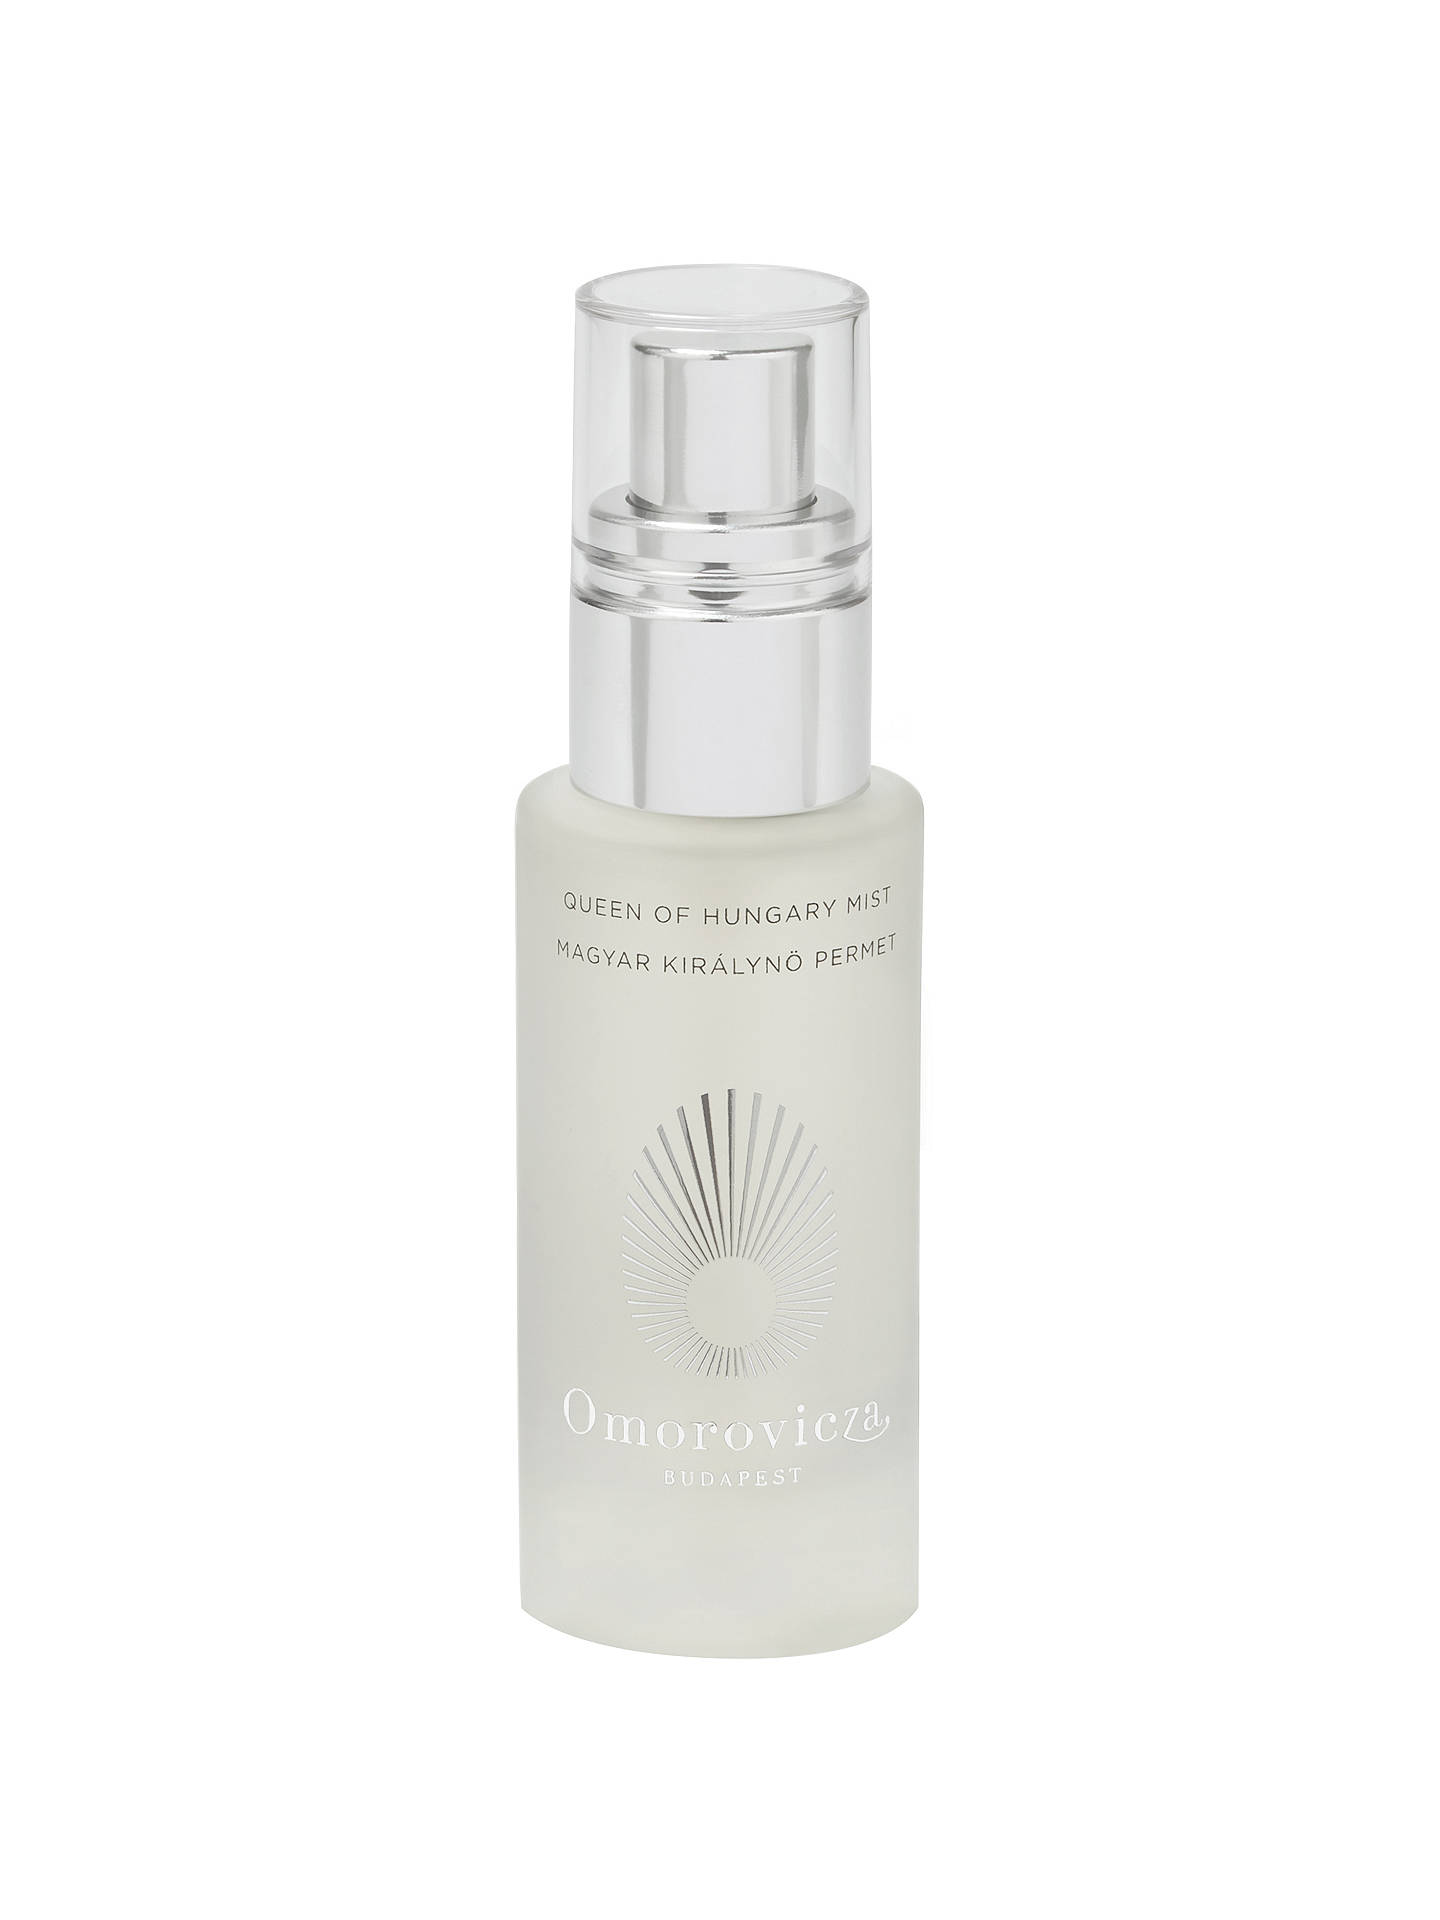 Buy Omorovicza Queen of Hungary Mist Travel Size, 30ml Online at johnlewis.com